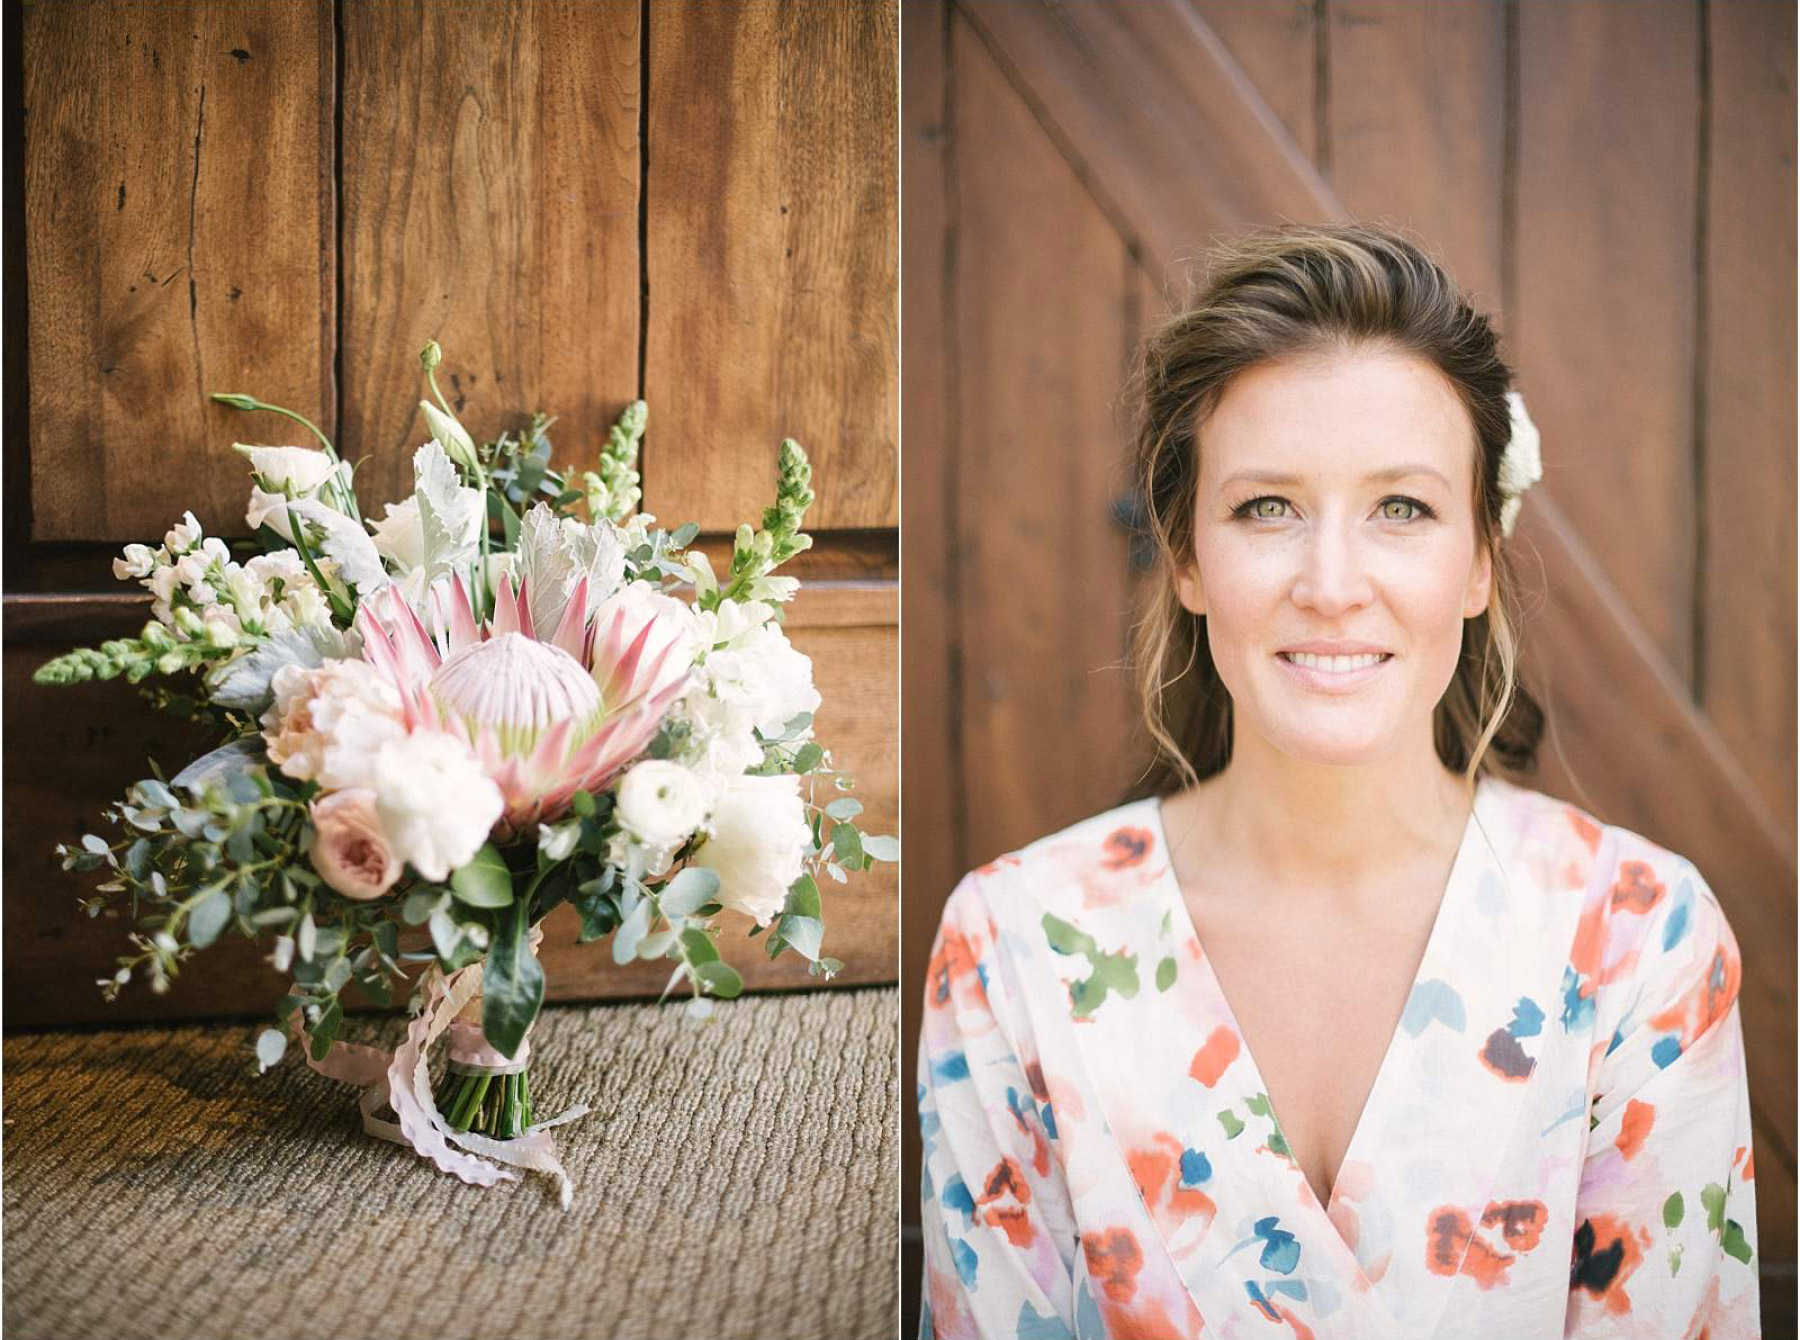 Beautiful bride and bouquet photograph